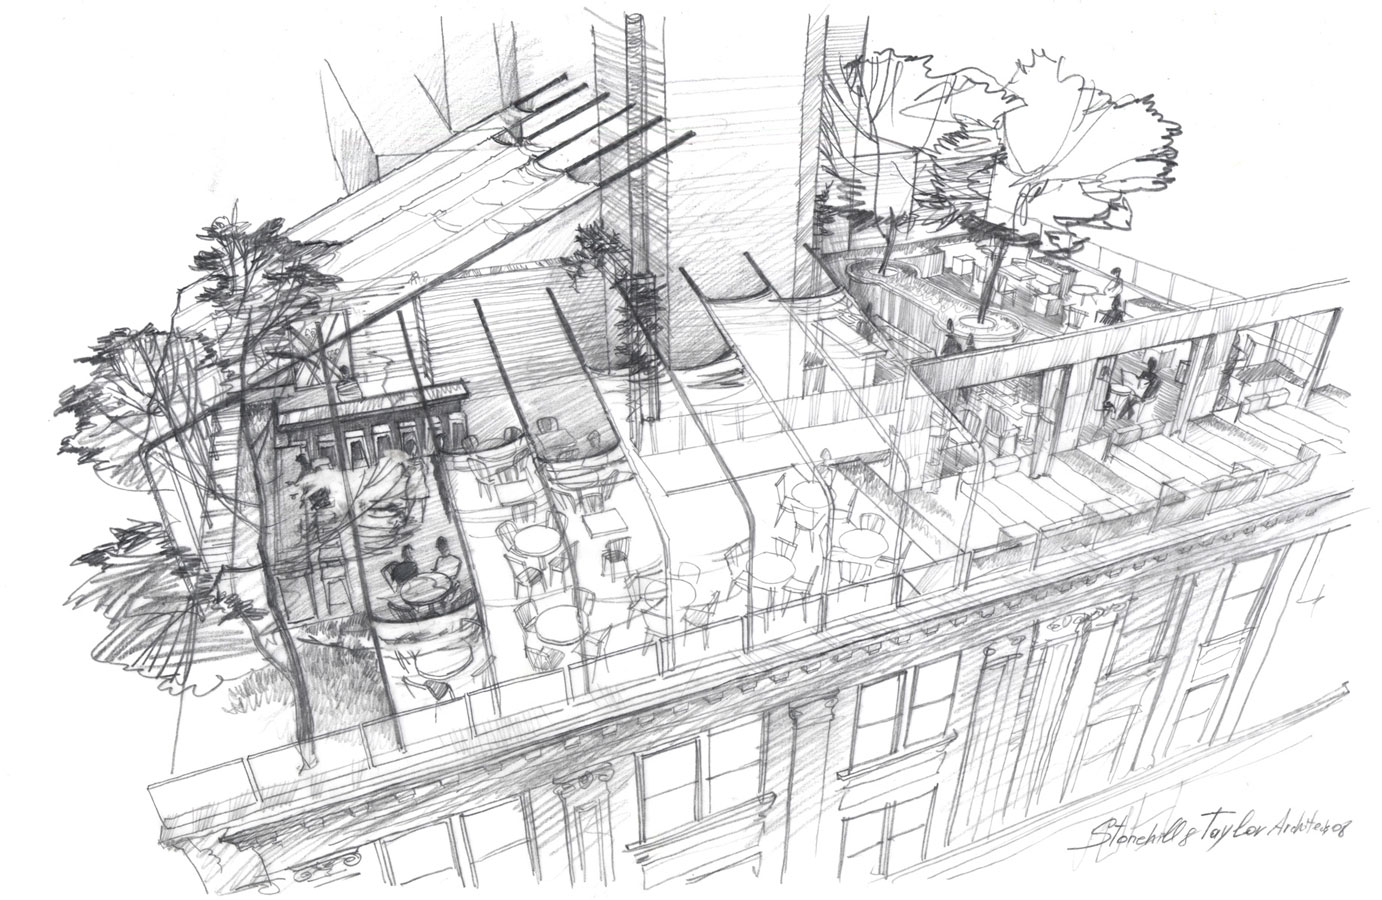 Architectural Rendering graphics freehand Sketch Pencil drawing architecture illustration hotel roof restaurant visualization artist Shalumov Шалум Шалумов архитектор художник